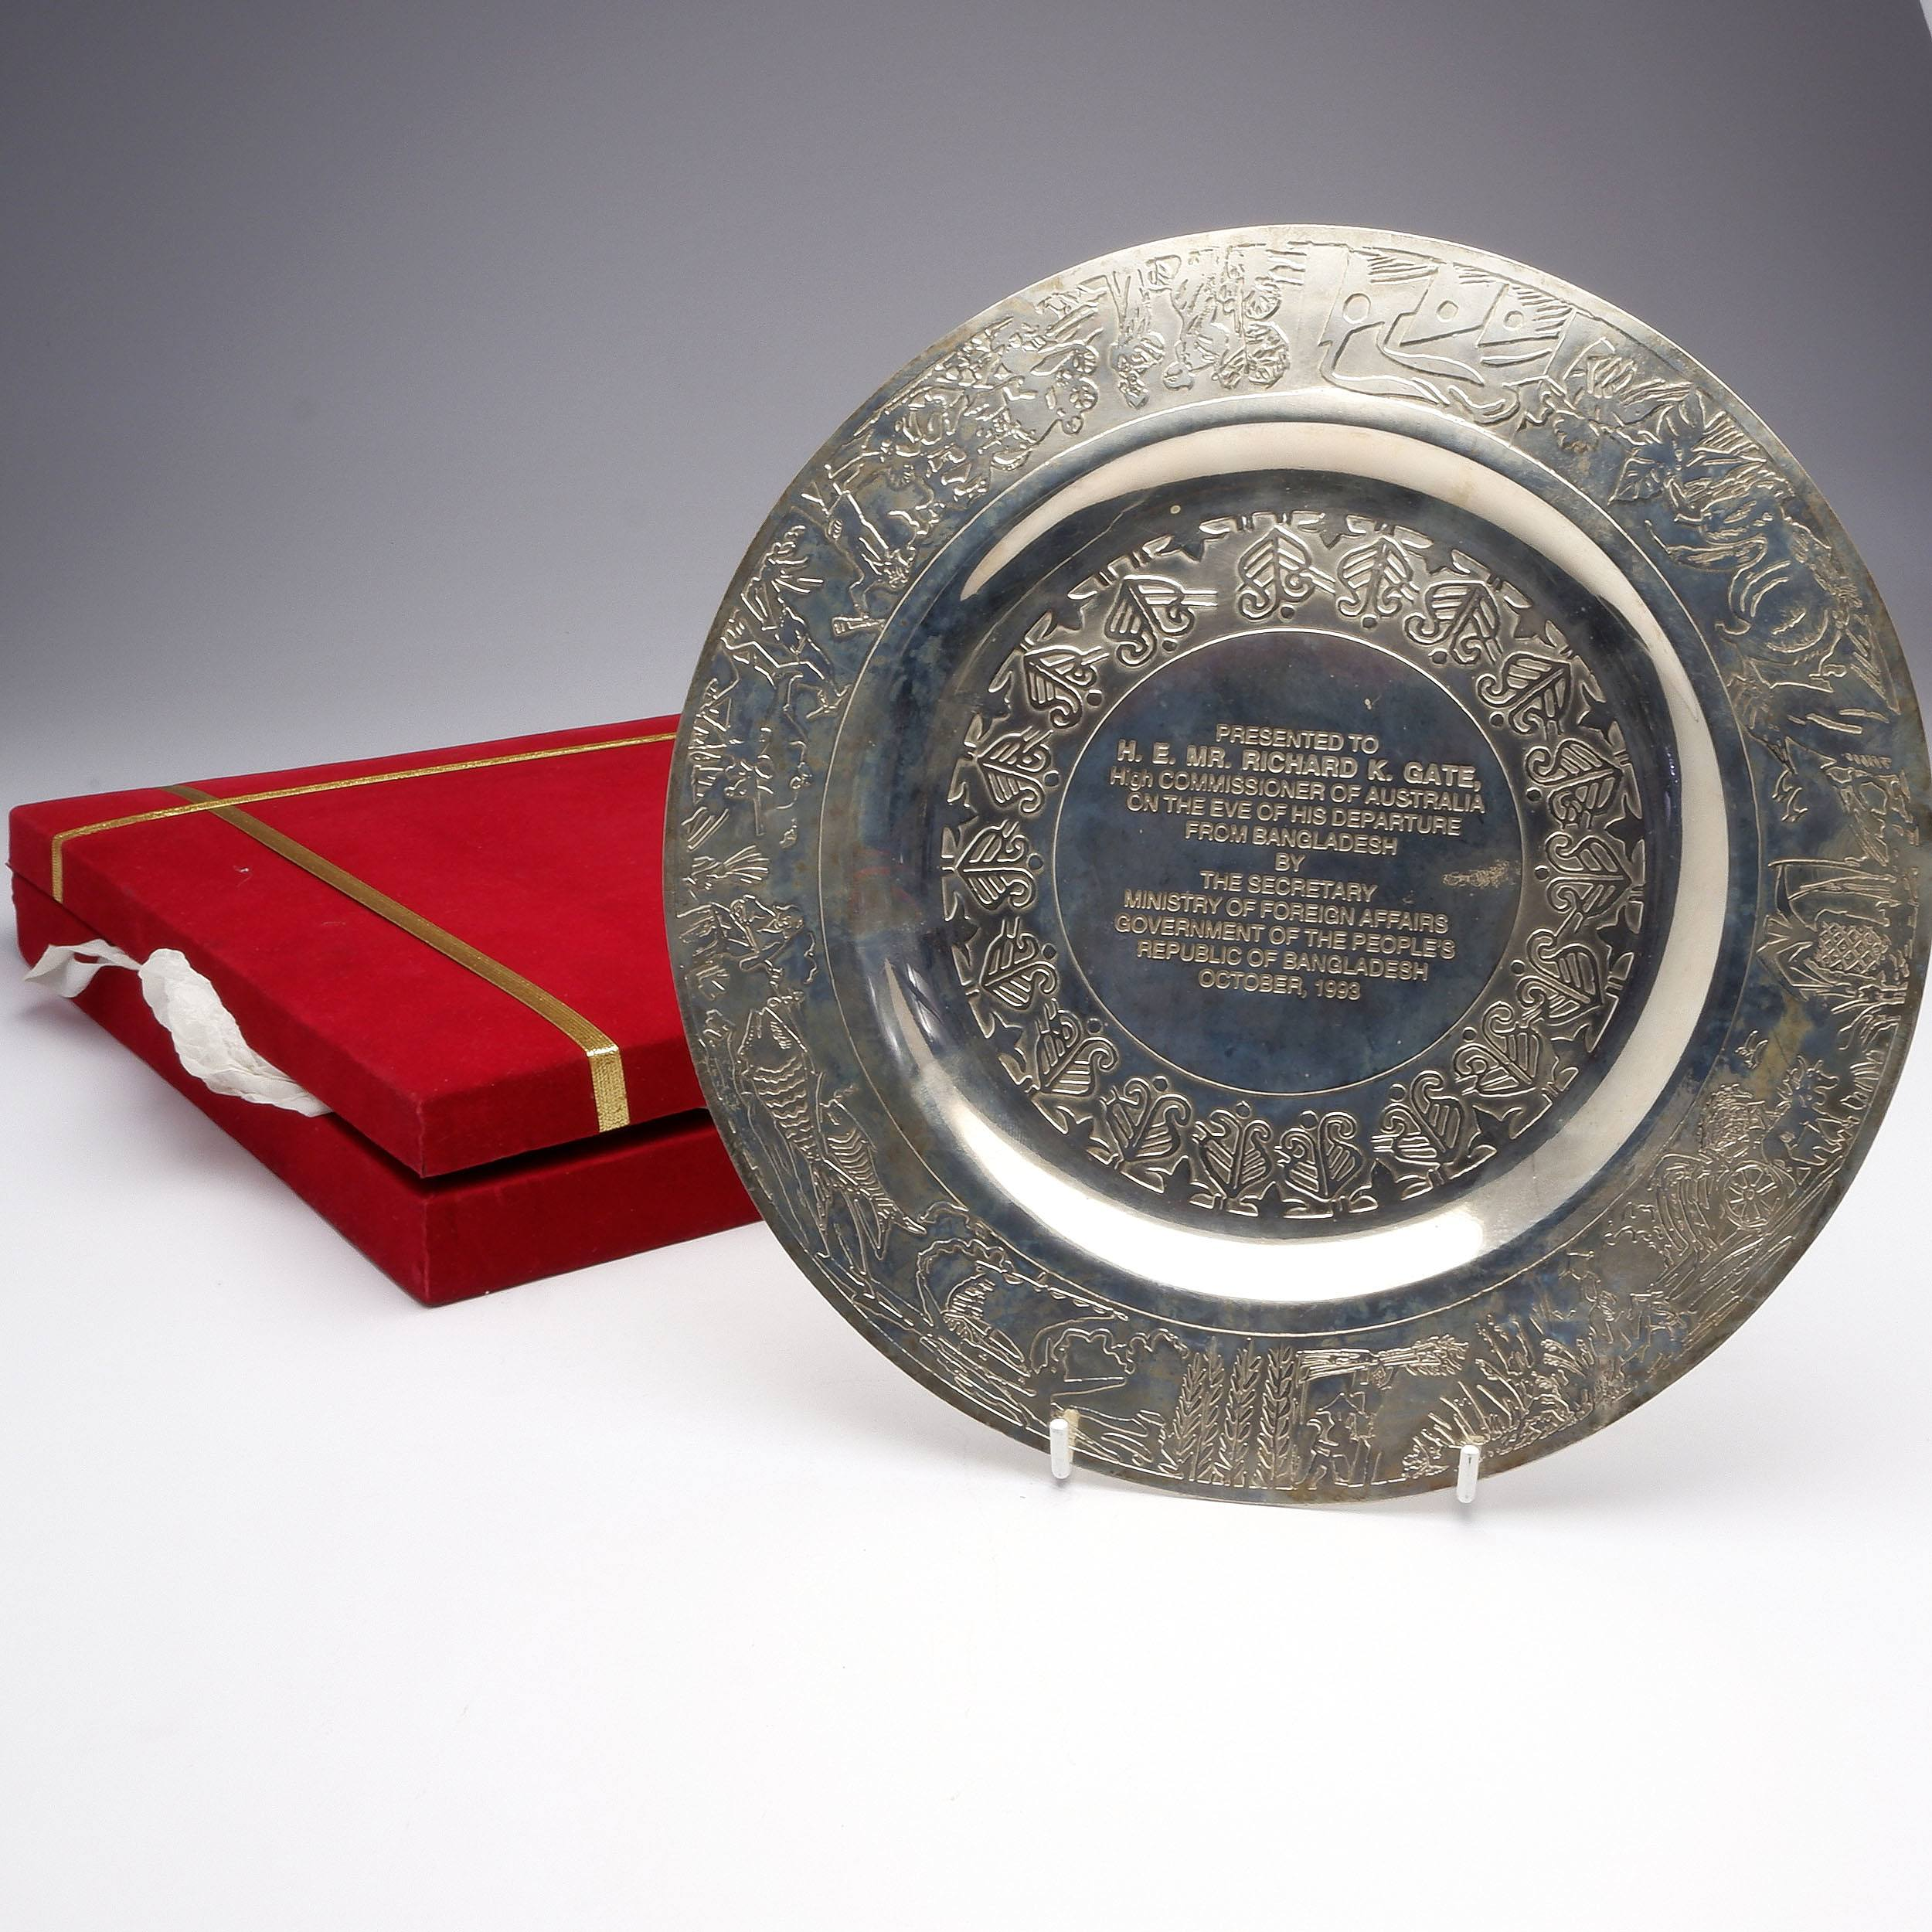 'Silver Charger Presented to Richard Gate on his Departure from Bangladesh 1993'